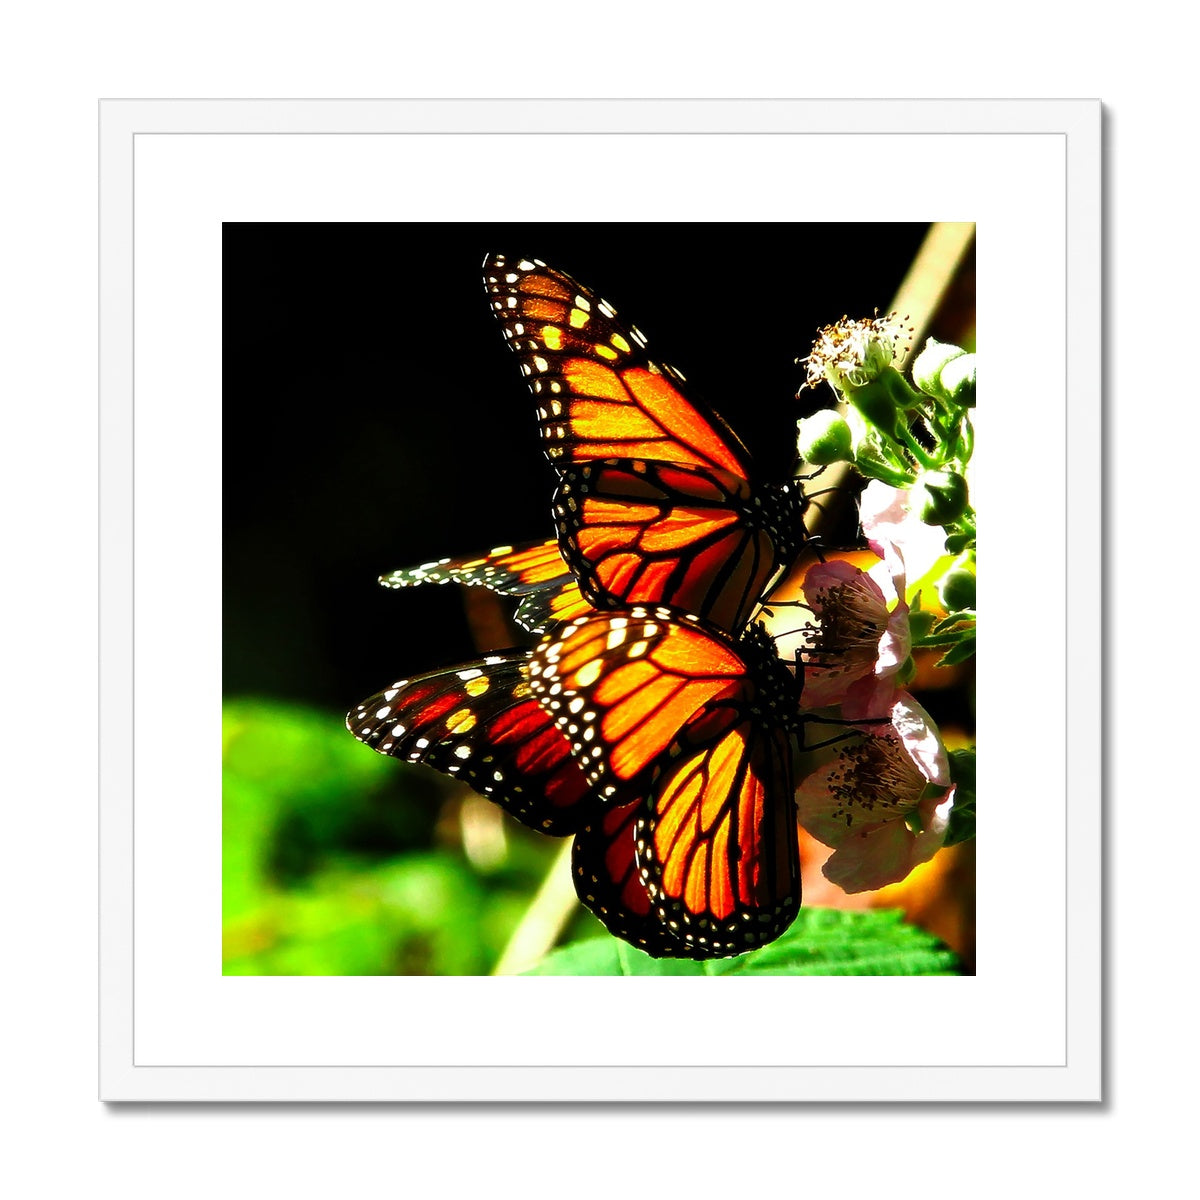 Butterfly Joy - Framed Mounted Print